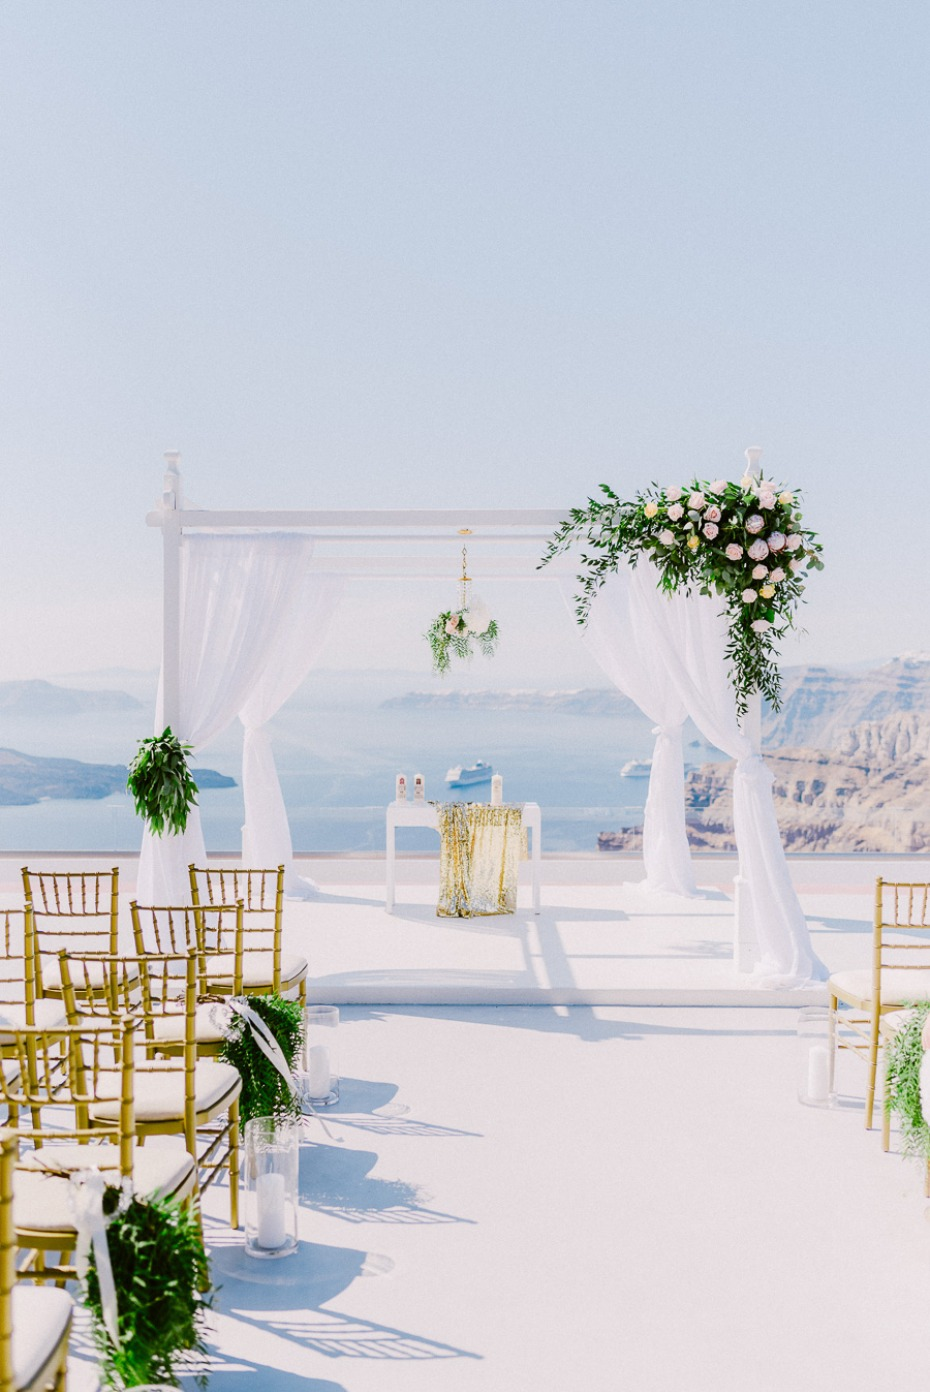 scenic wedding ceremony in Greece